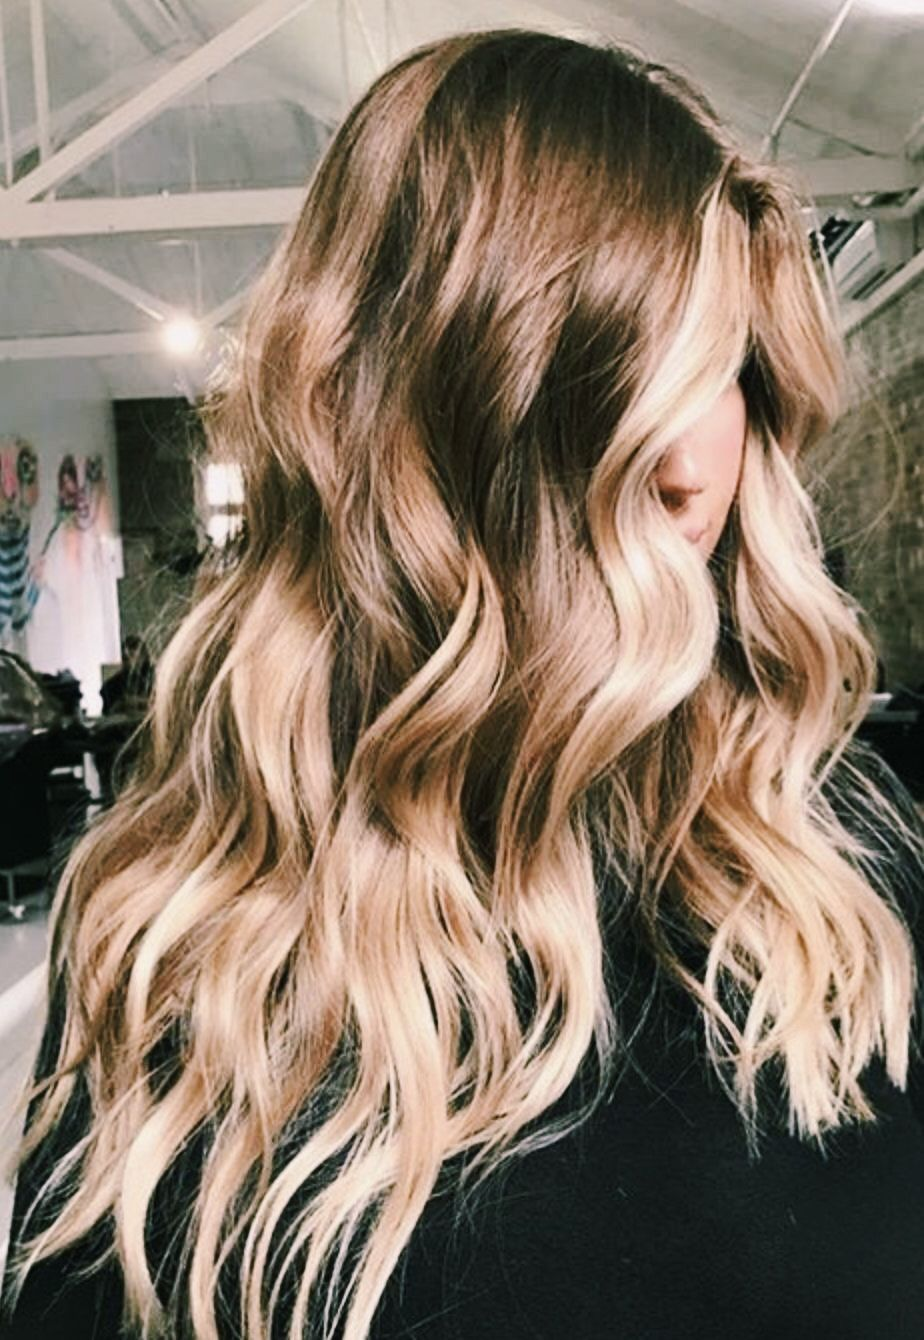 Pin by Jessica Bivona on h a i r Pinterest Hair style Tangled